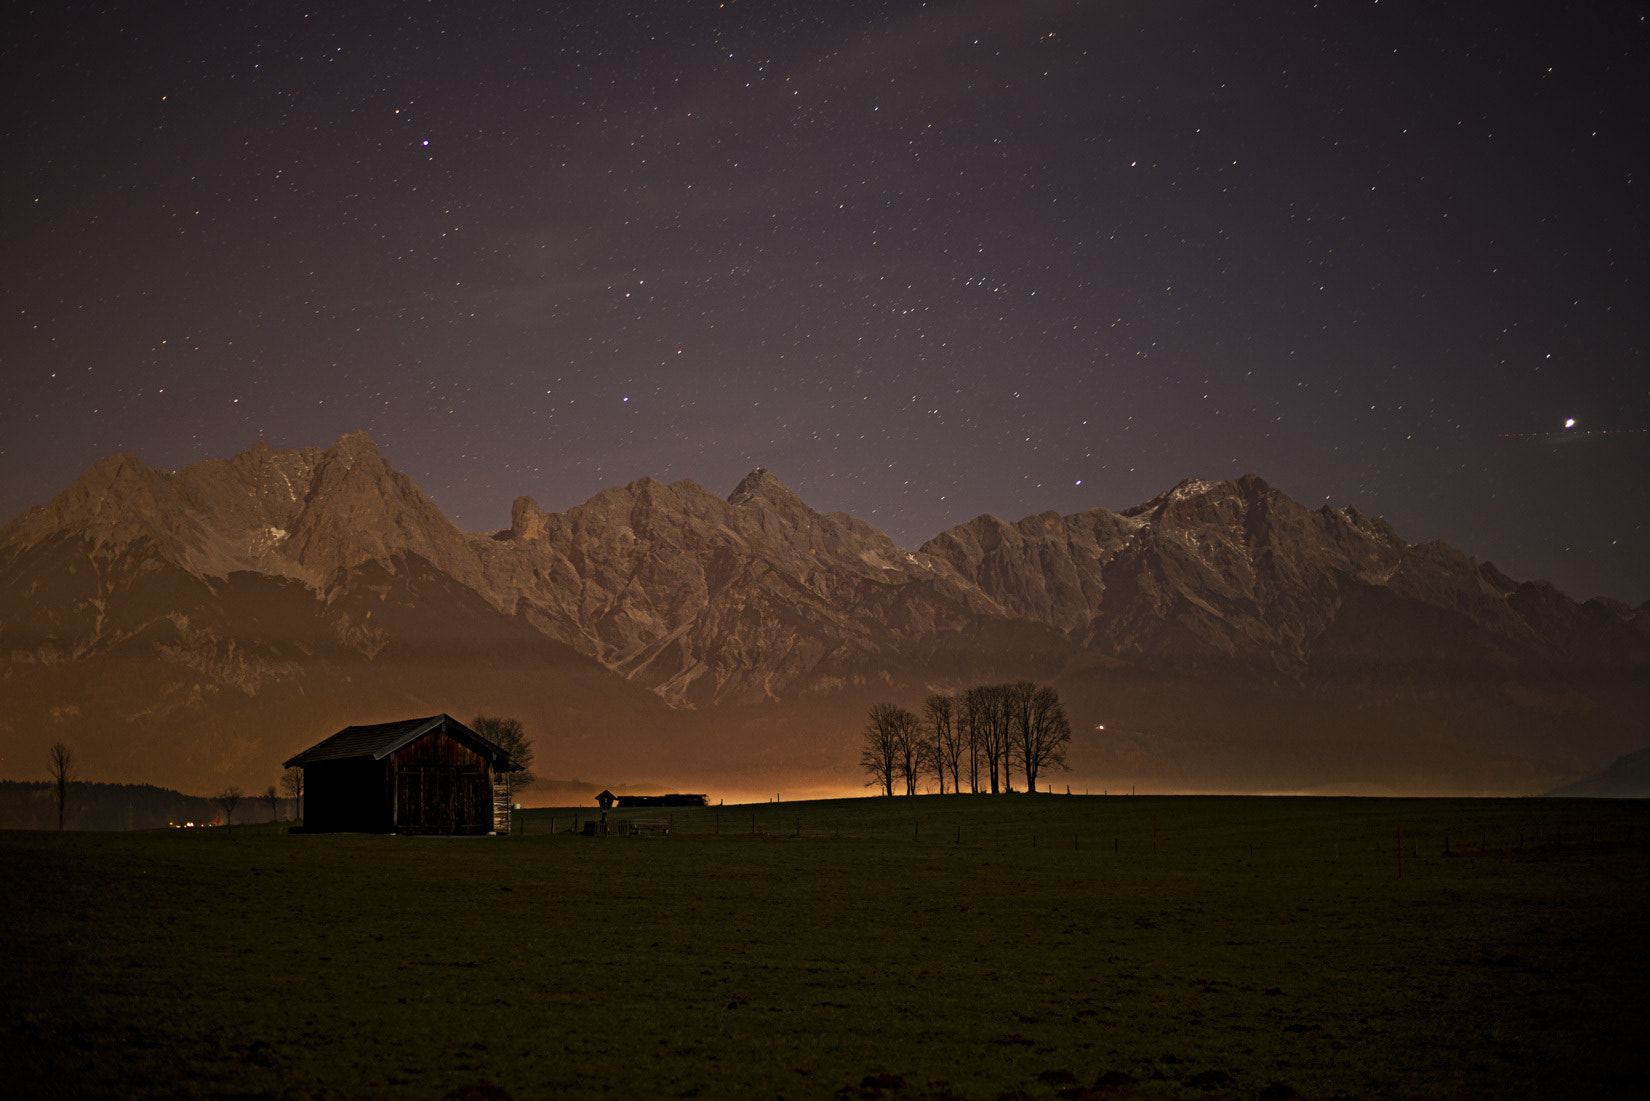 Photograph Creamy Nightshot  by Patrick Hochleitner on 500px